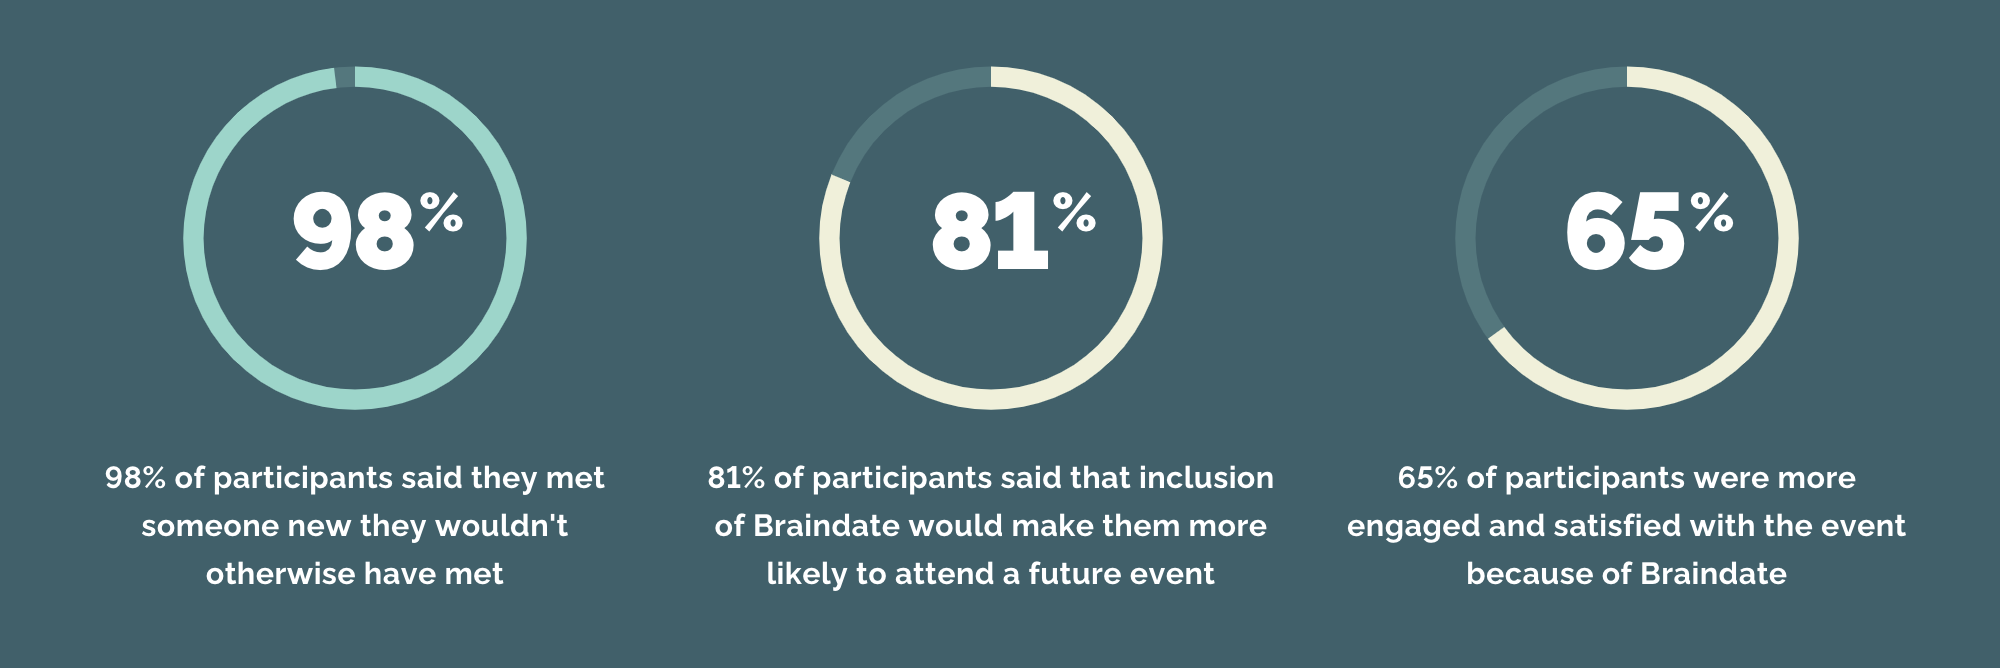 Why event planners work with Braindate